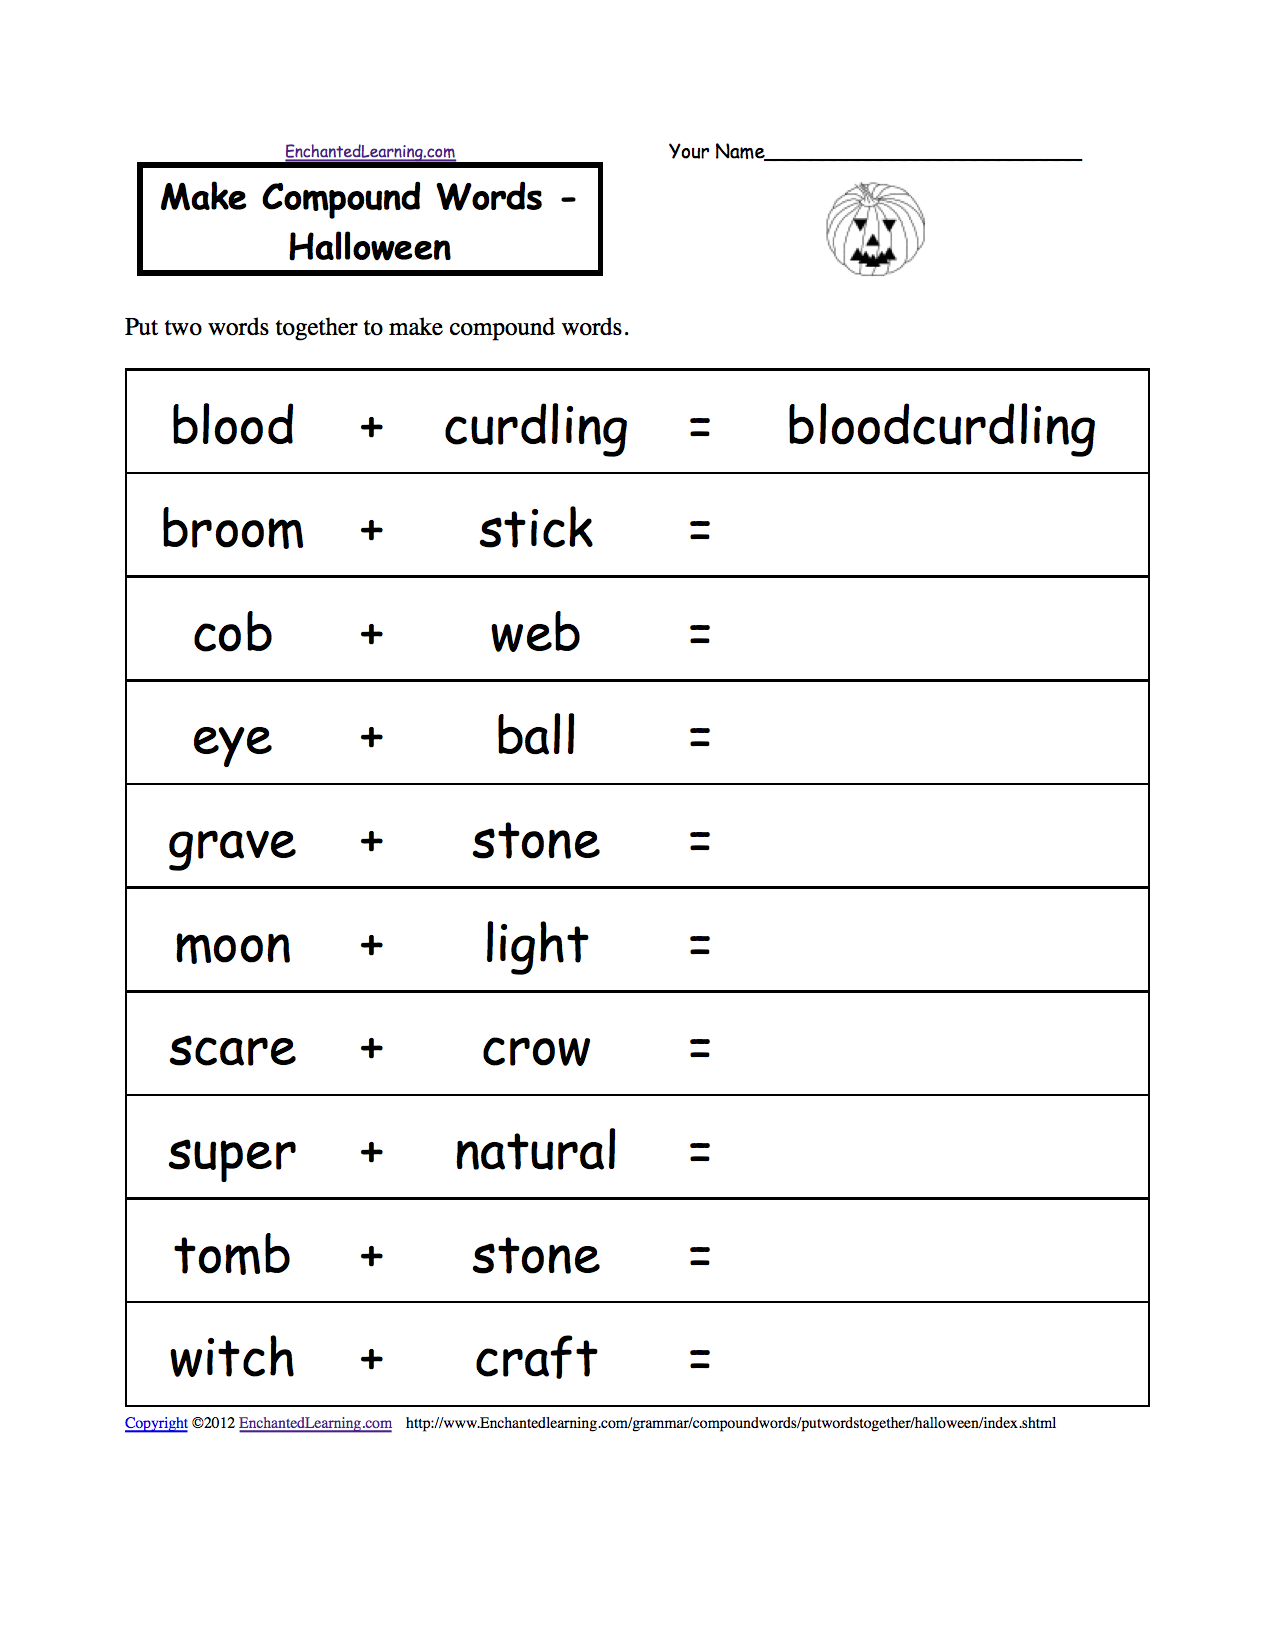 Worksheet Free Printable English Worksheets For Grade 3 make compound words printable worksheets enchantedlearning com words